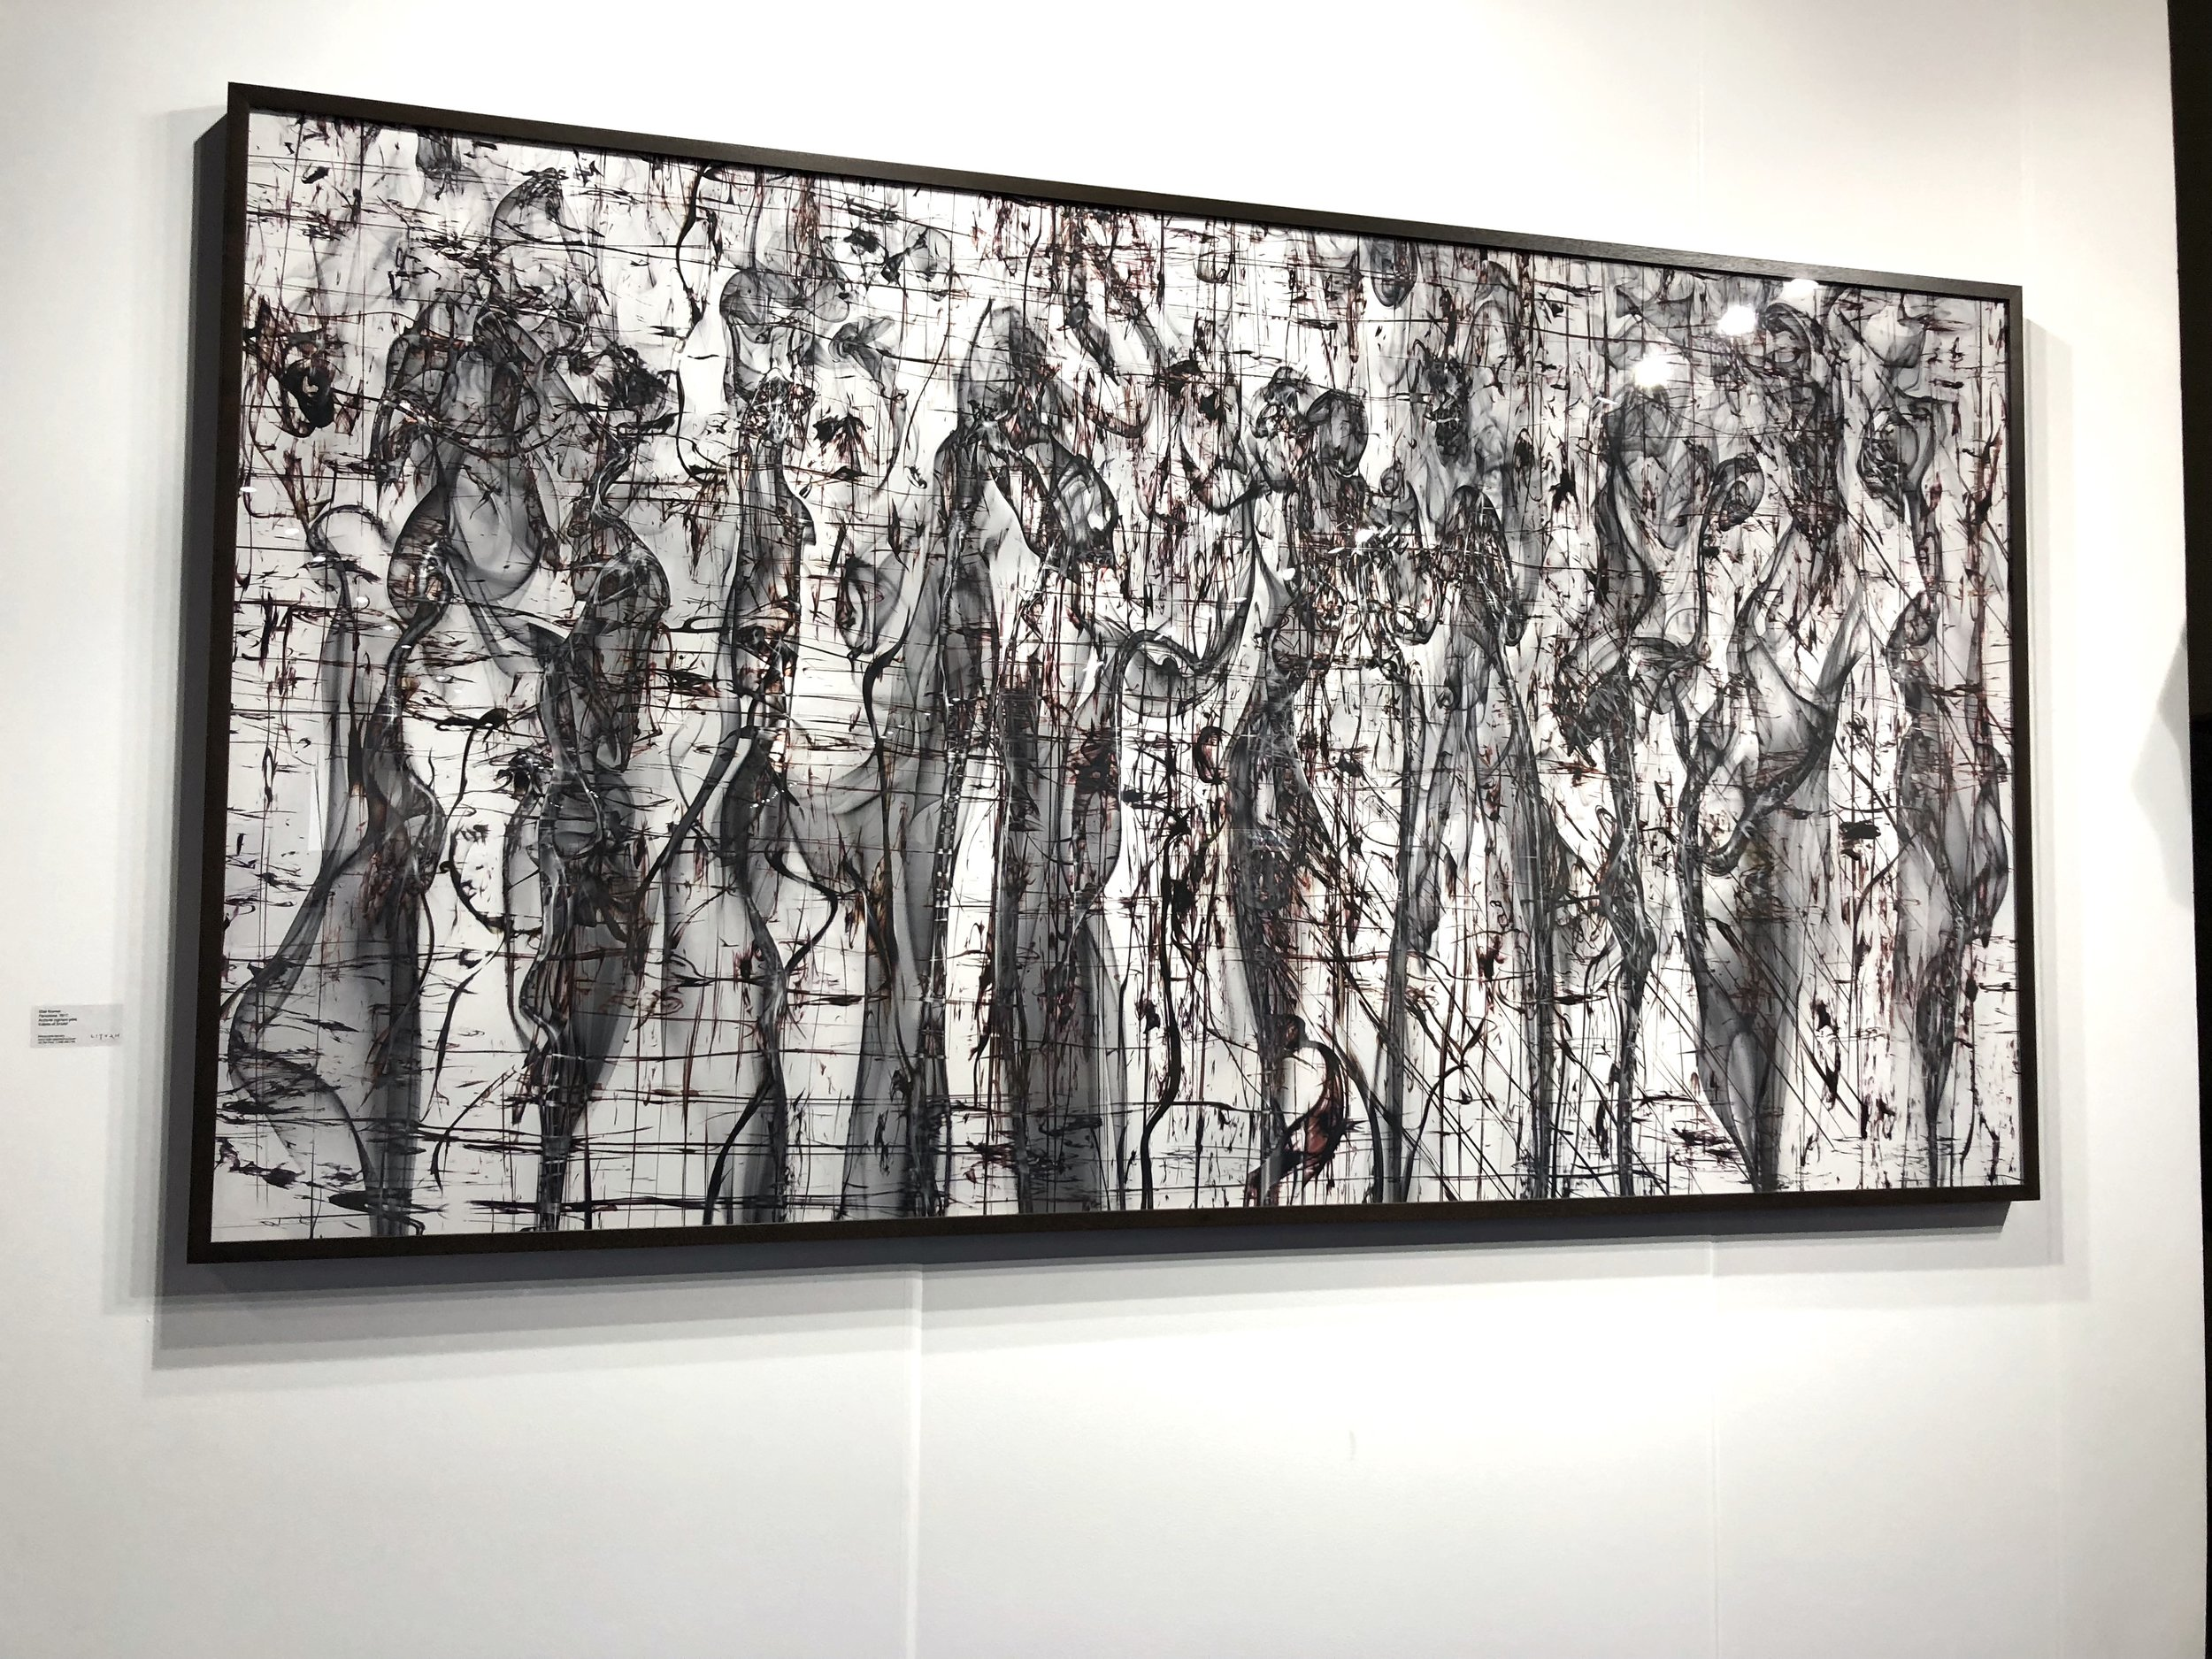 Shai Kremer,  Panorama , 2017 Archival pigment print Edition of 3+2AP, 57 x 105 inches  Litvak Contemporary Booth: Installation View